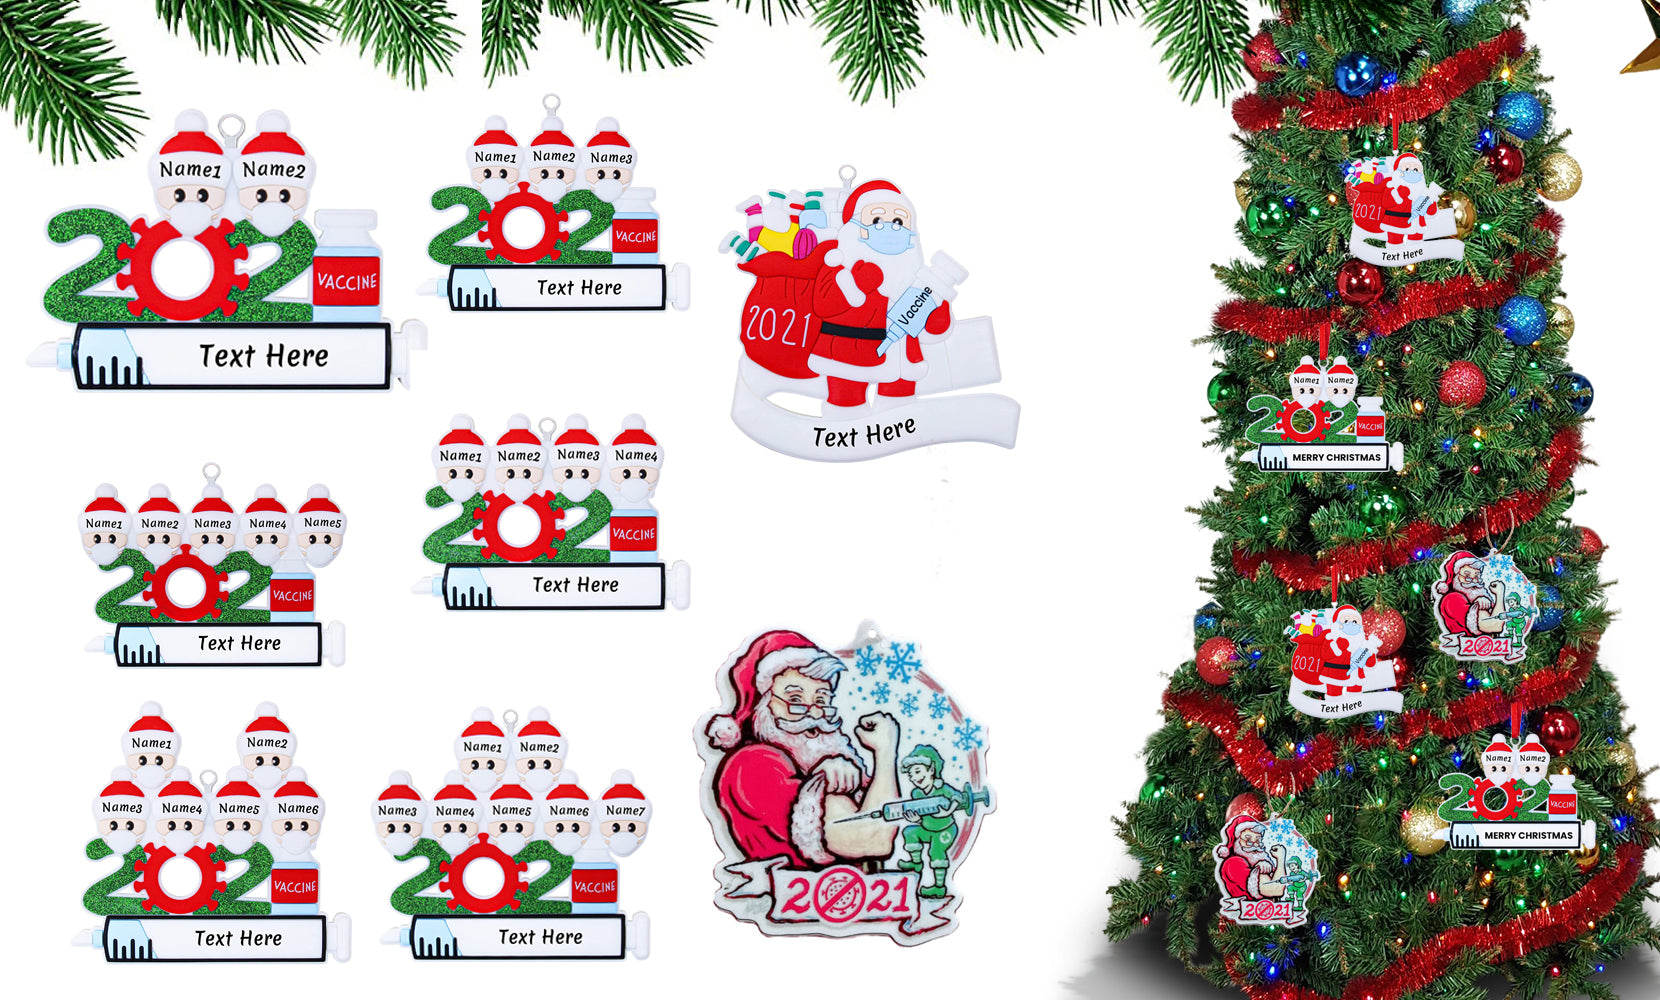 shopify-2021 Quarantine Special  Family Christmas  Ornaments Personalized Gifts for All-1